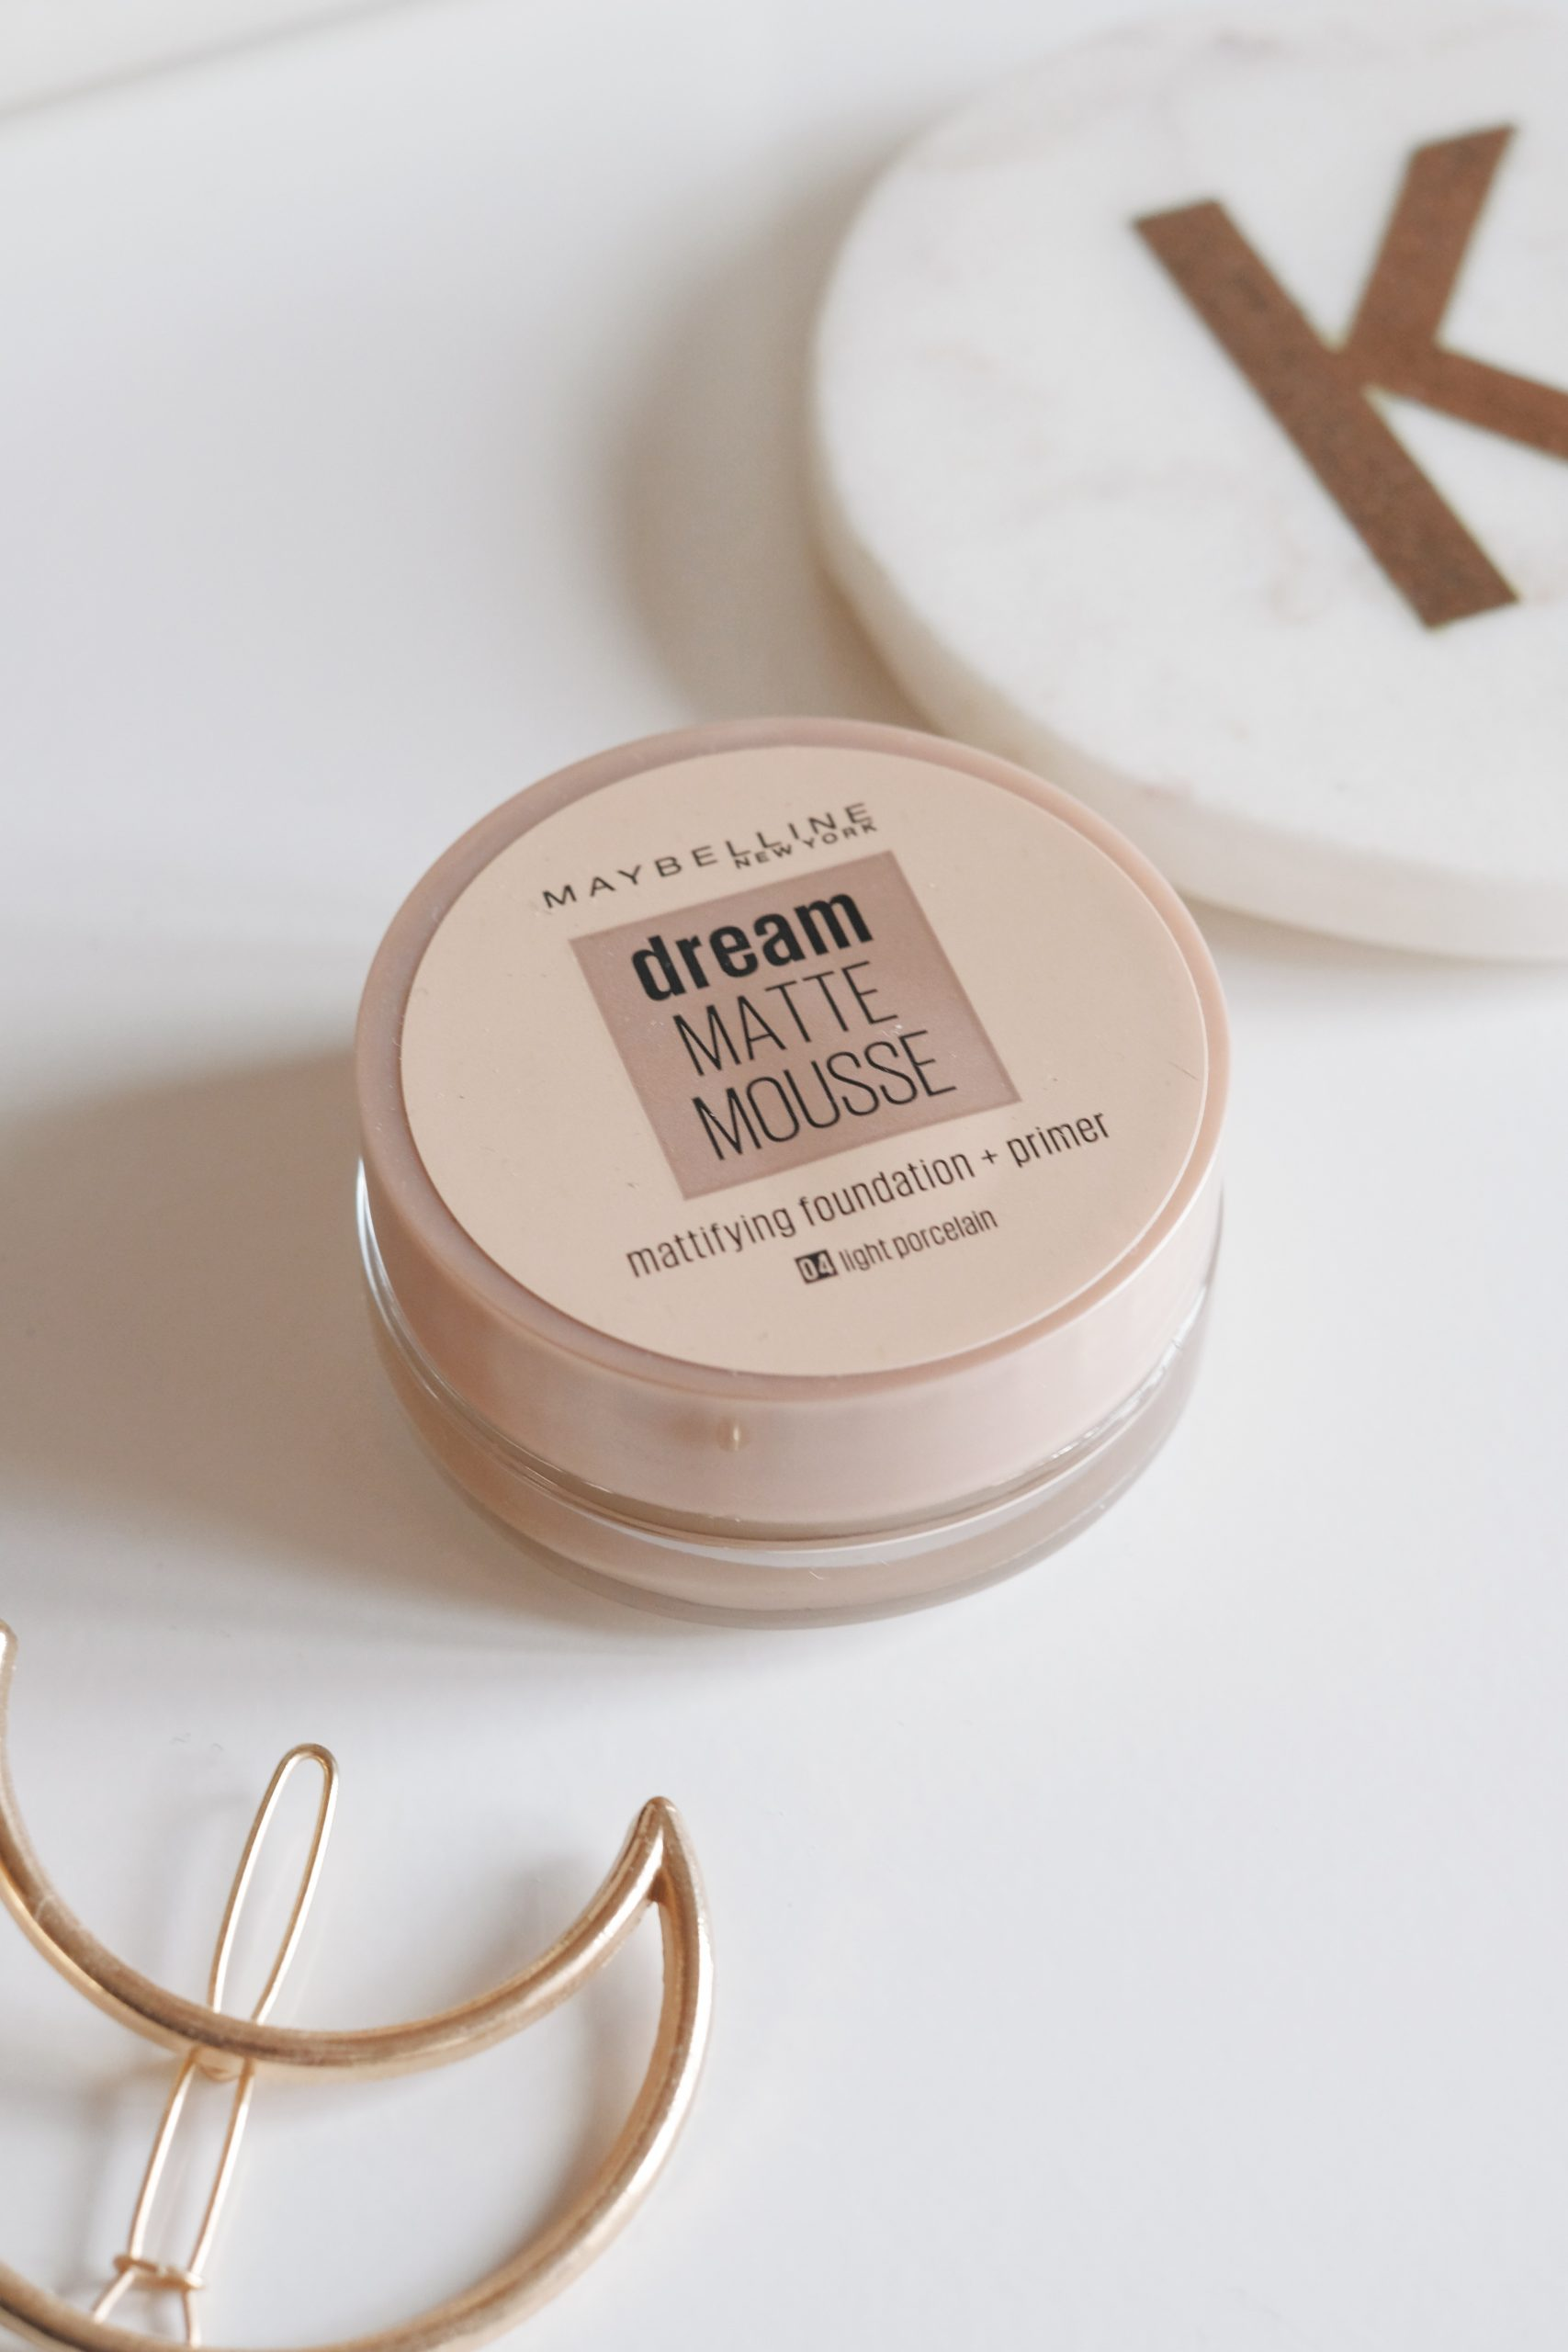 Maybelline Dream Matte Mousse, 04 Light Porcelain, Pale skin foundations, Beauty bloggers, Maybelline Dream Matte Mousse Review, Dream Matte Mousse Review, Good foundations for pale skin, cheap foundations for pale skin,